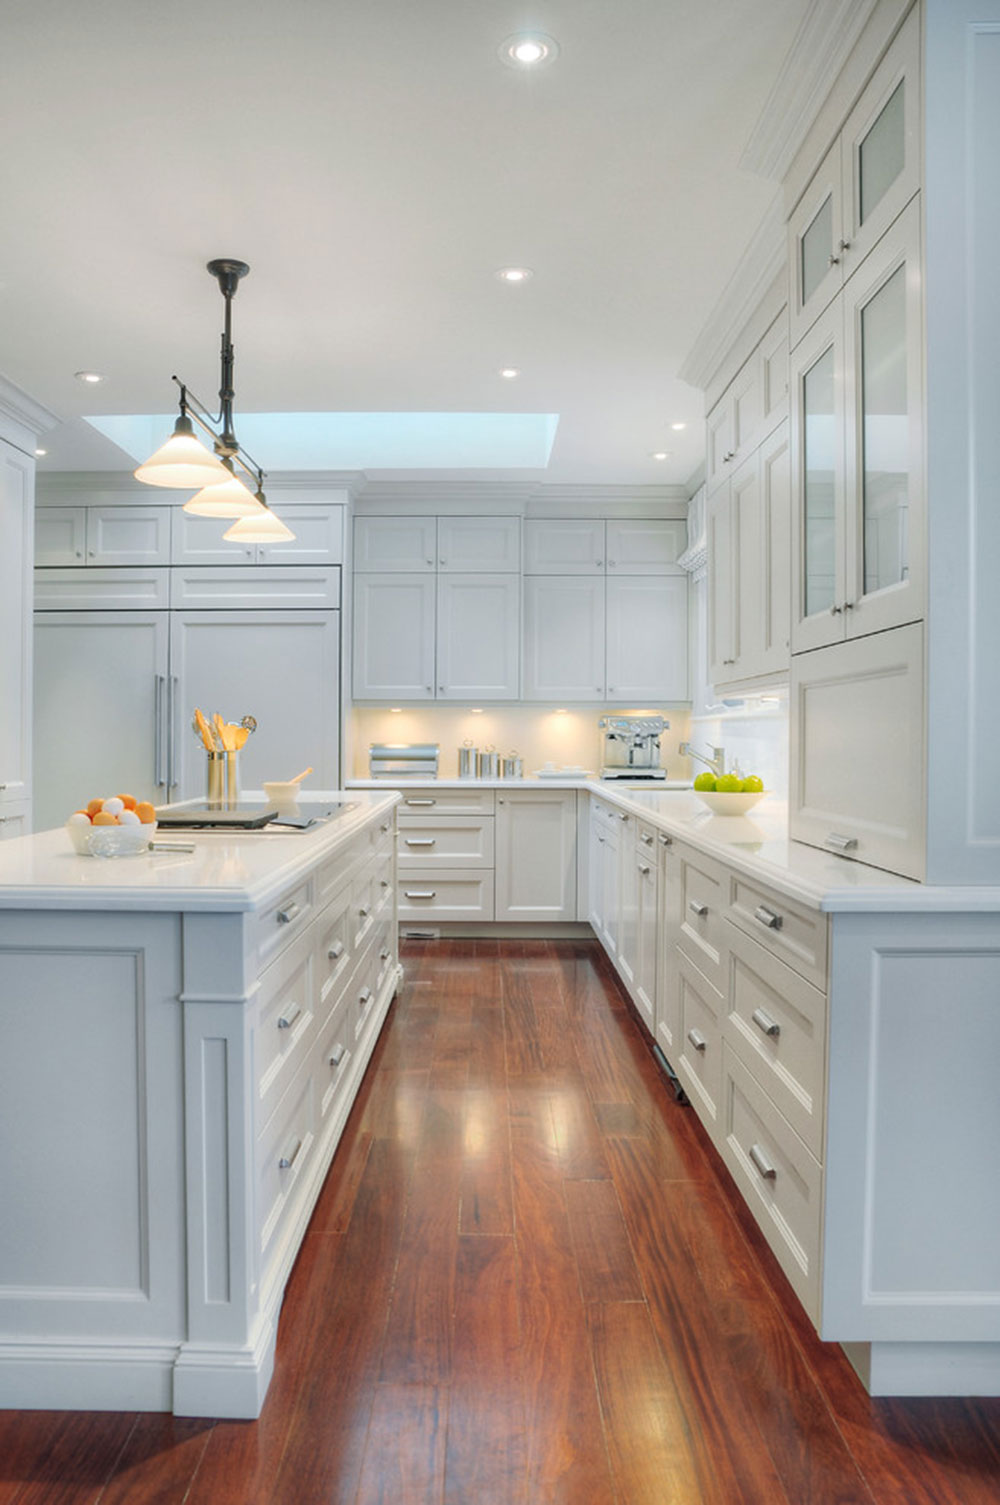 Brighten Your Kitchen With Sparkling White Quartz Countertop on Counter Top Decor  id=59505